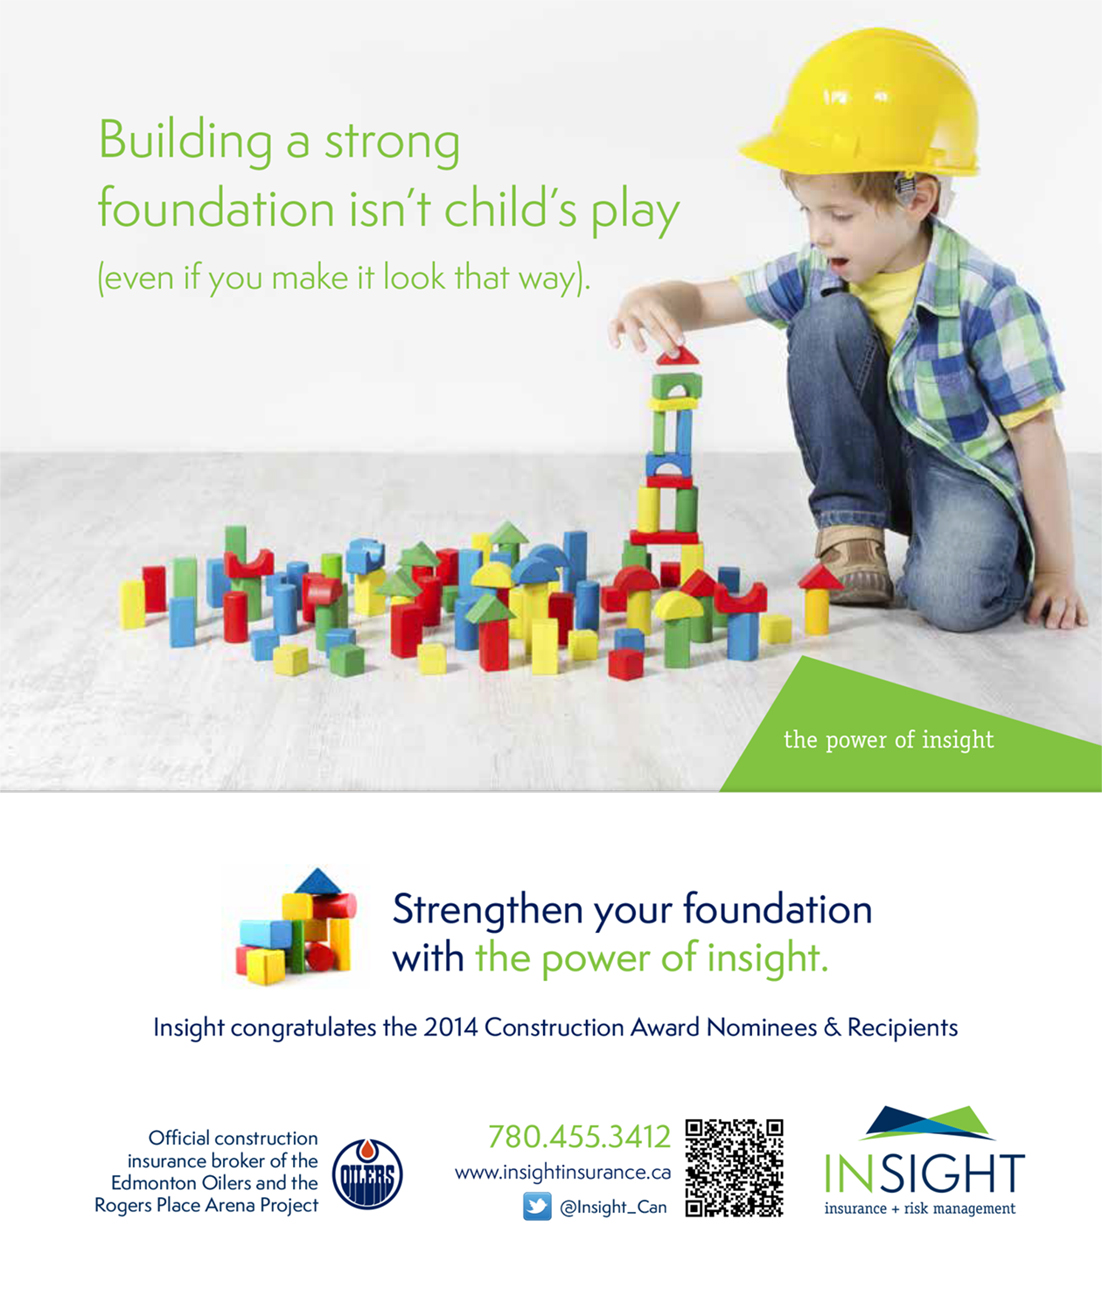 insight insurance magazine ad - strengthen your foundations with the power of insight